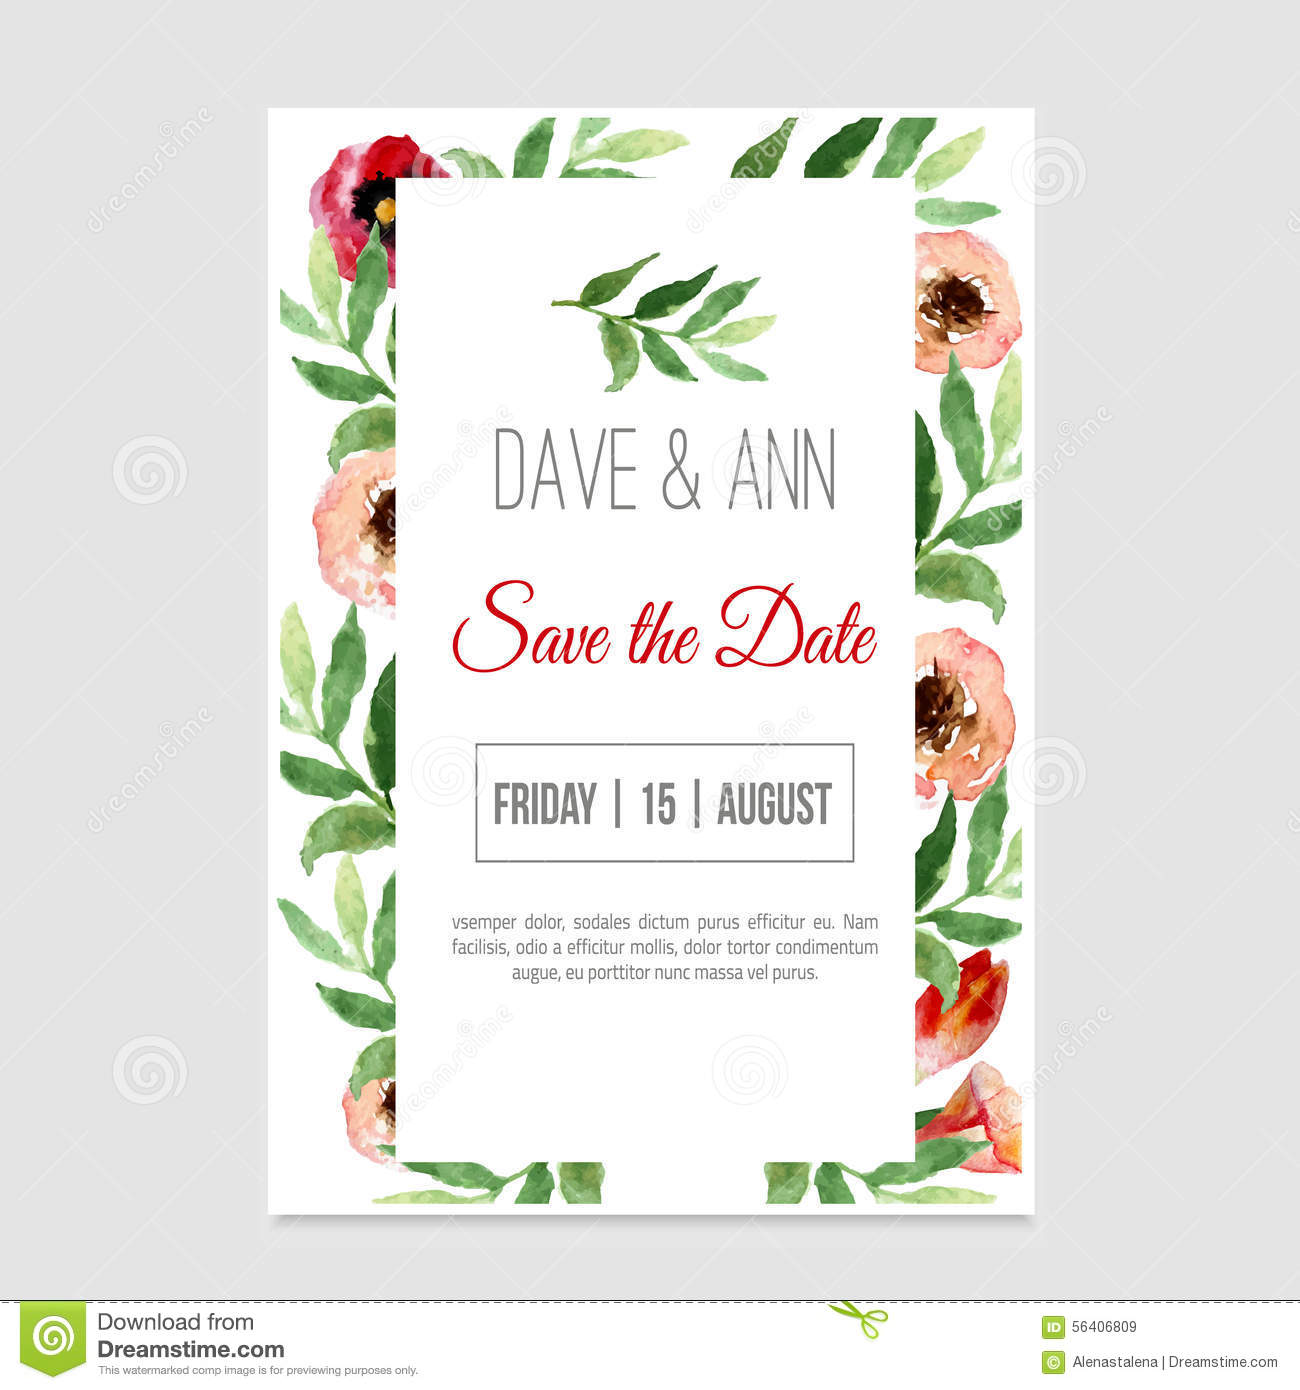 Vector watercolor template save the date with floral frame leaves vector watercolor template save the date with floral frame leaves artistic design for banners kristyandbryce Images